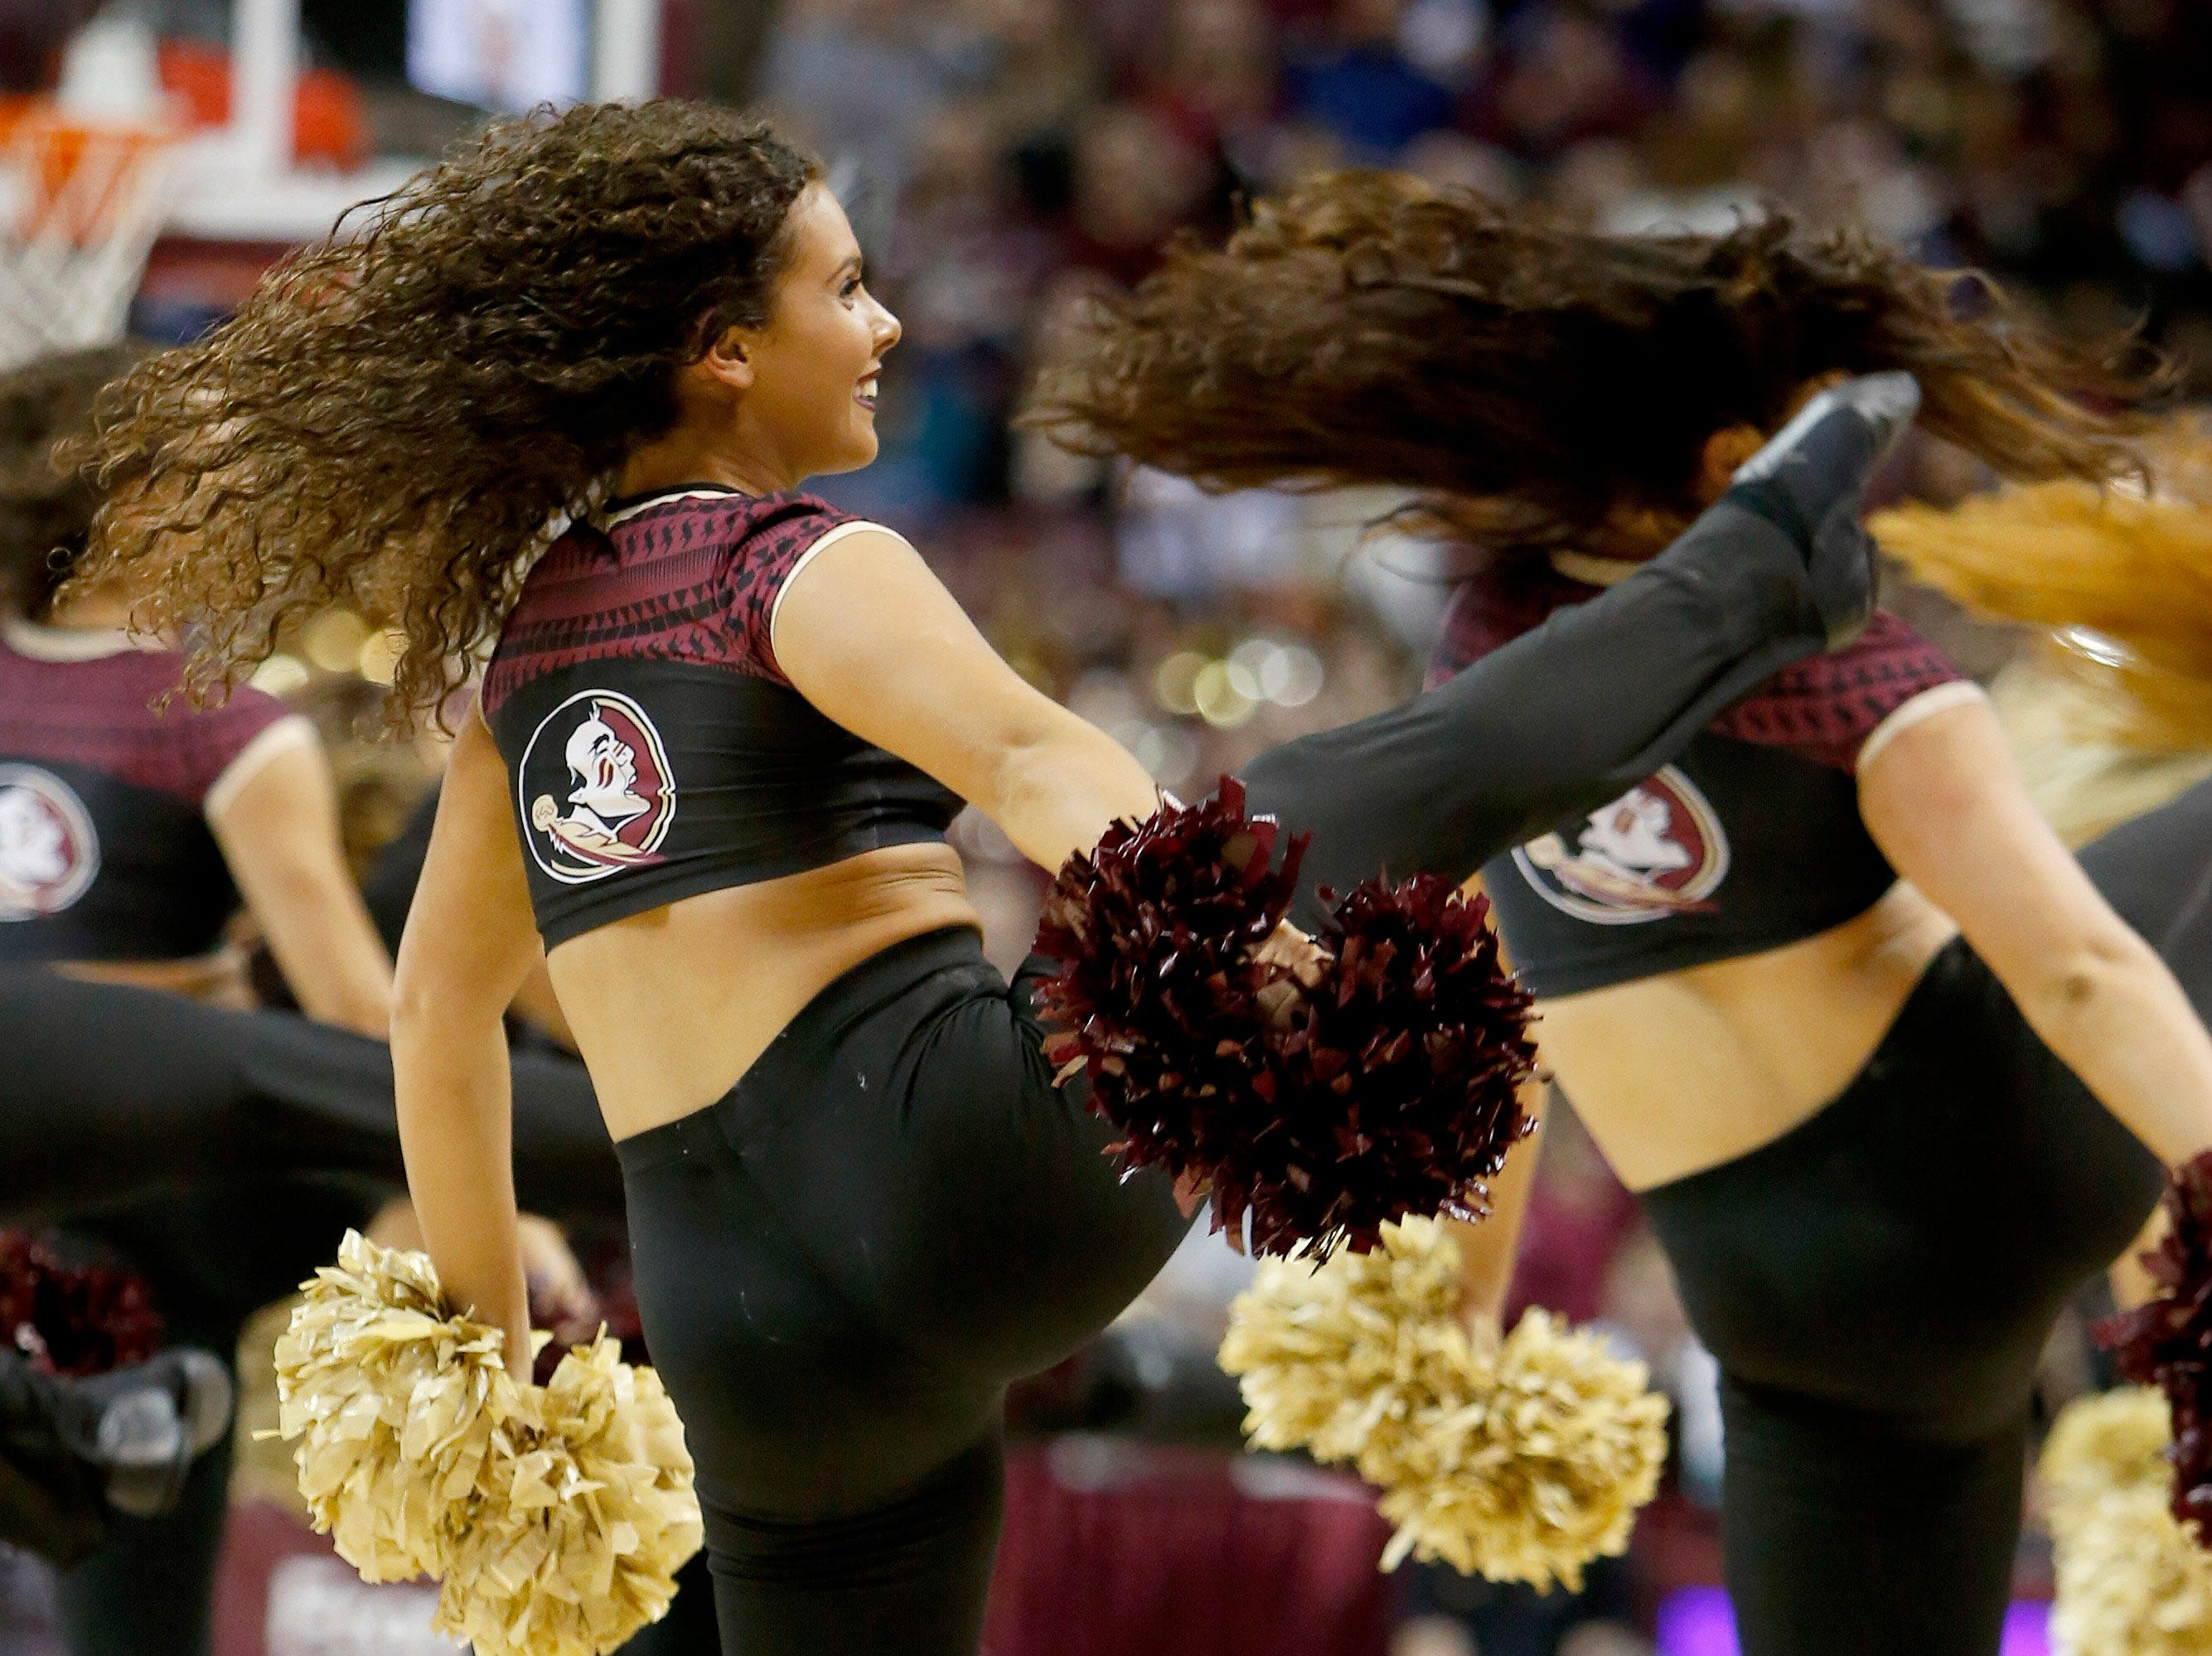 Jan 22, 2019; Tallahassee, FL, USA; A Florida State Seminoles Golden Girl performs during a timeout during the first half against the Clemson Tigers at Donald L. Tucker Center. Mandatory Credit: Glenn Beil-USA TODAY Sports